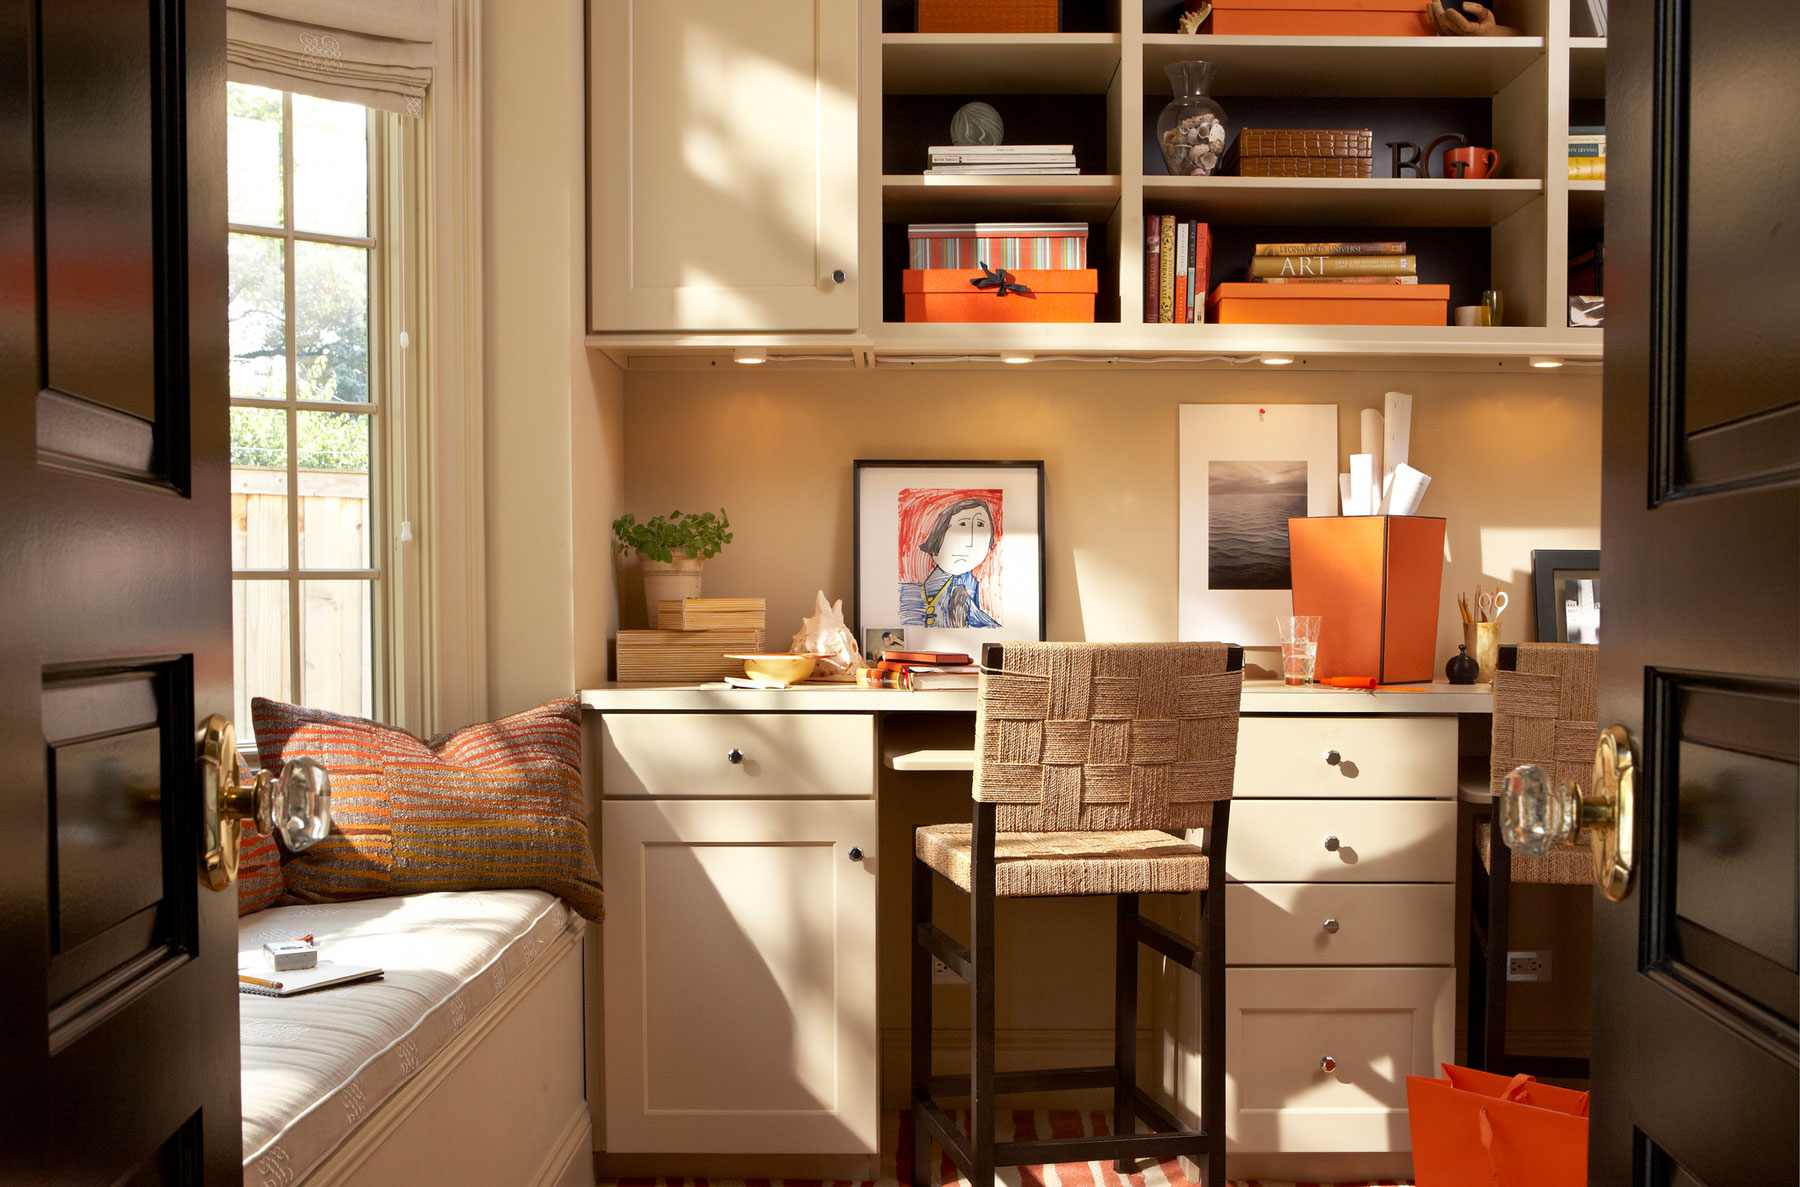 7 Things in Your Home Office You Should Get Rid of Today